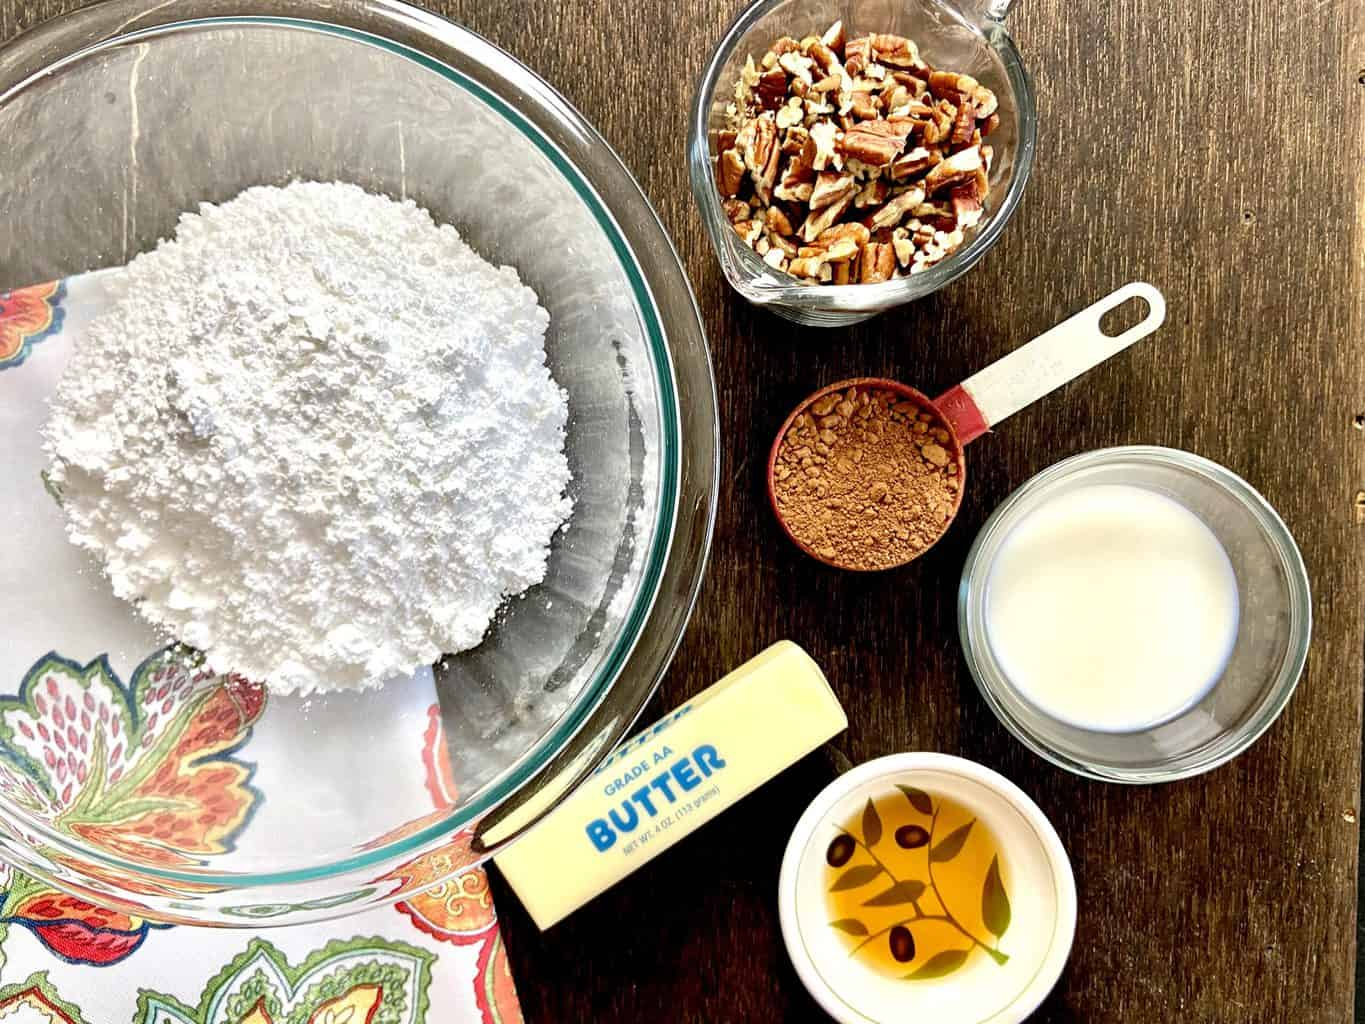 Chocolate pecan icing ingredients on counter.